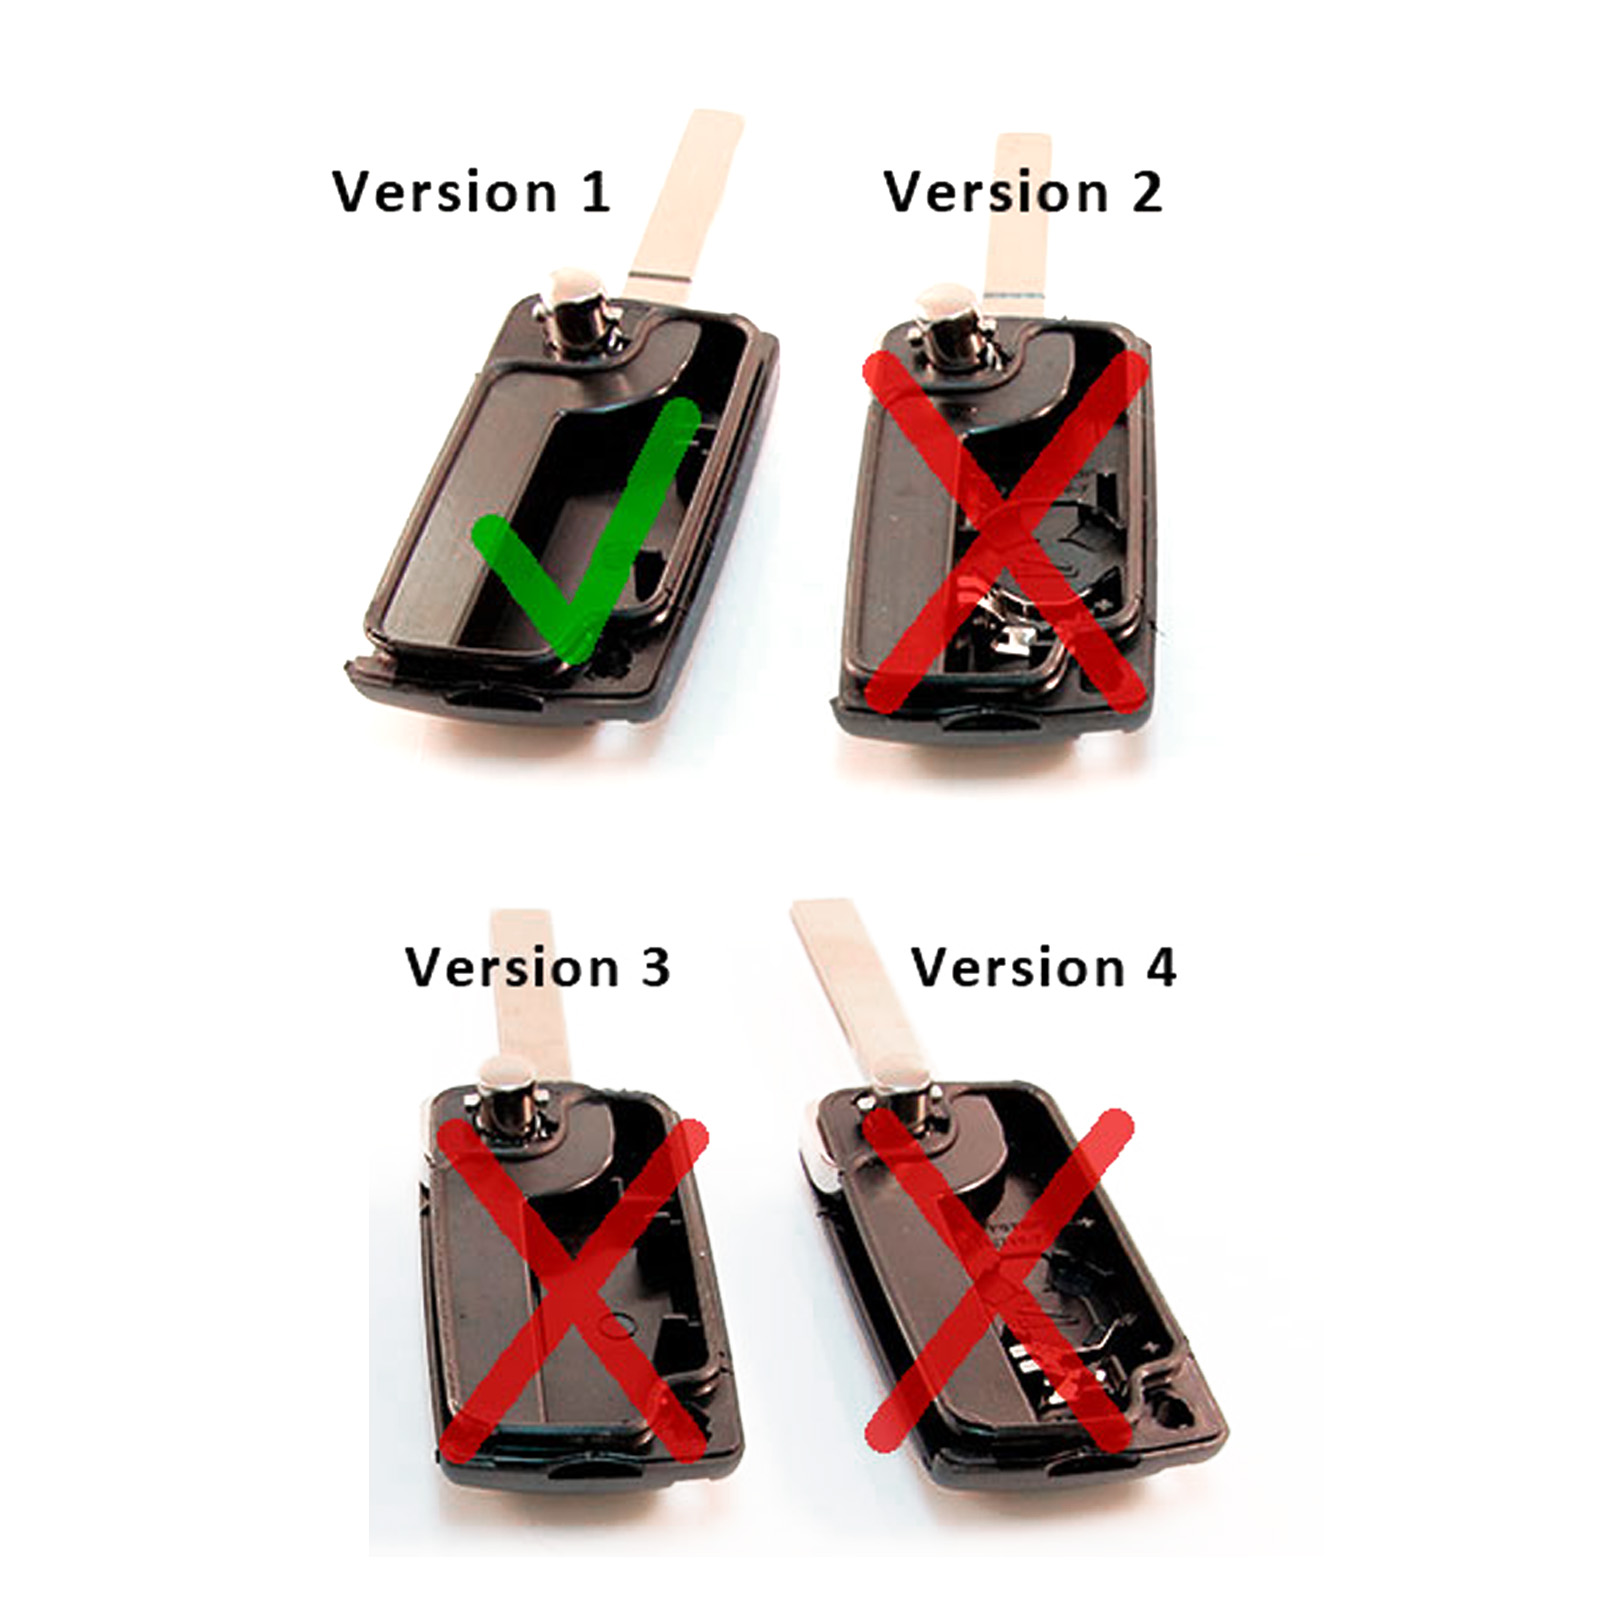 3 button flip control remote key fob case blade for citroen c3 c4 c5 c6 picasso ebay. Black Bedroom Furniture Sets. Home Design Ideas